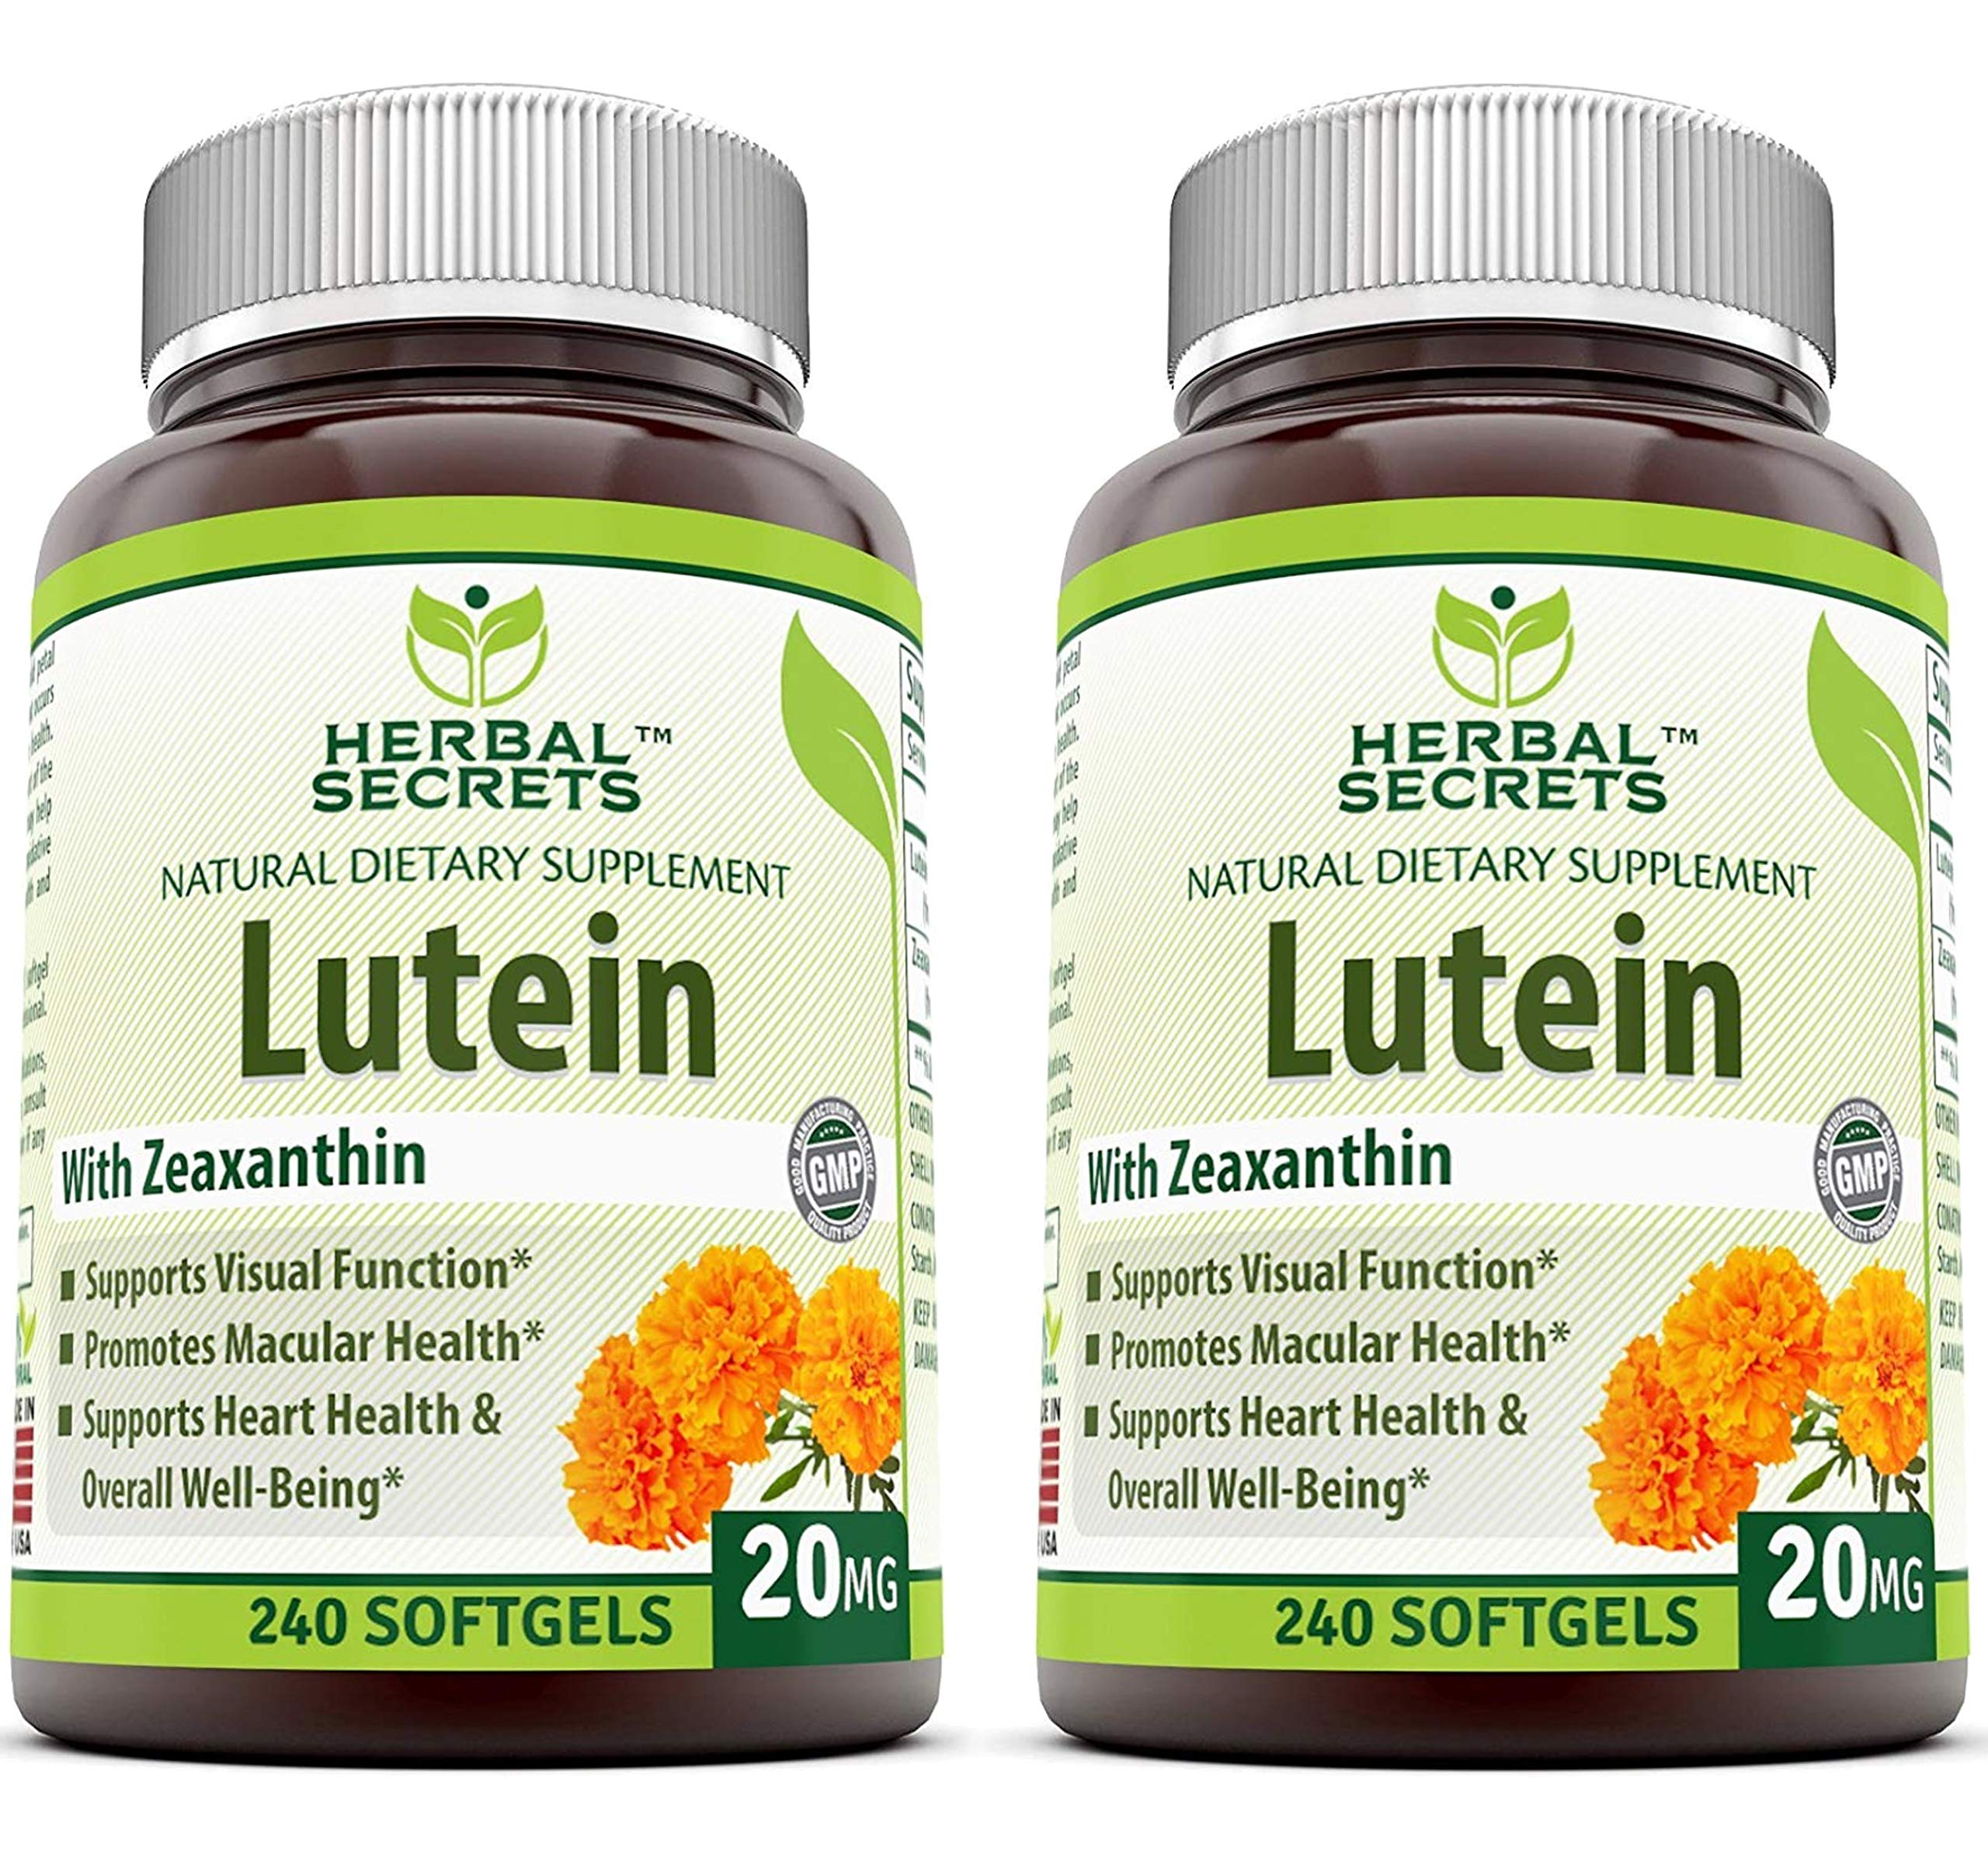 Herbal Secrets Lutein with Zeaxanthin 20 Mg 240 Softgels (Pack of 2 Bottles)